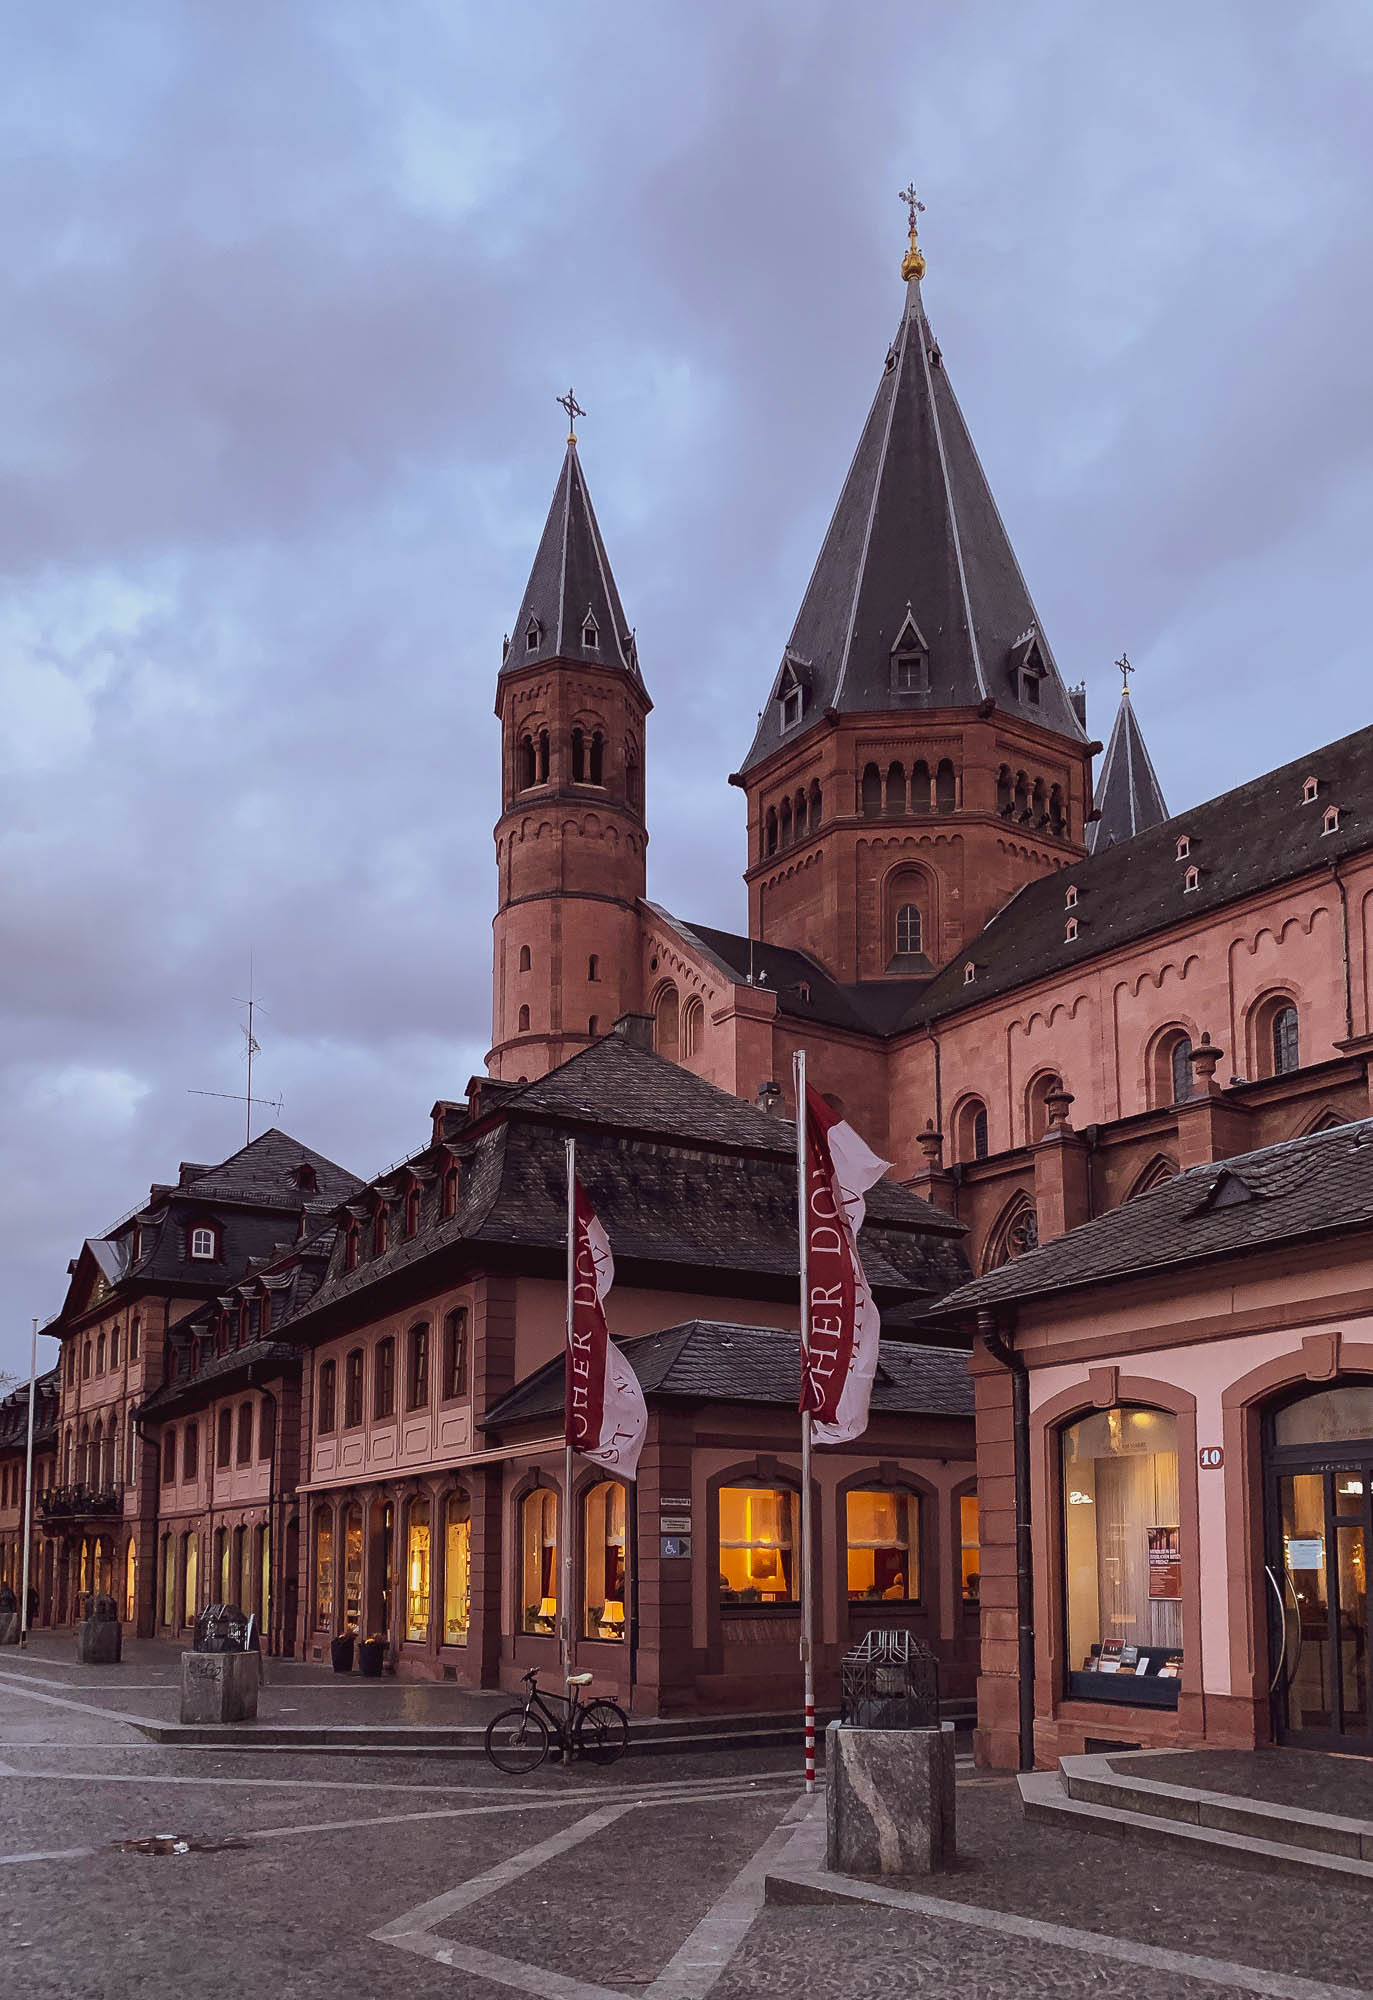 The Mainz Cathedral